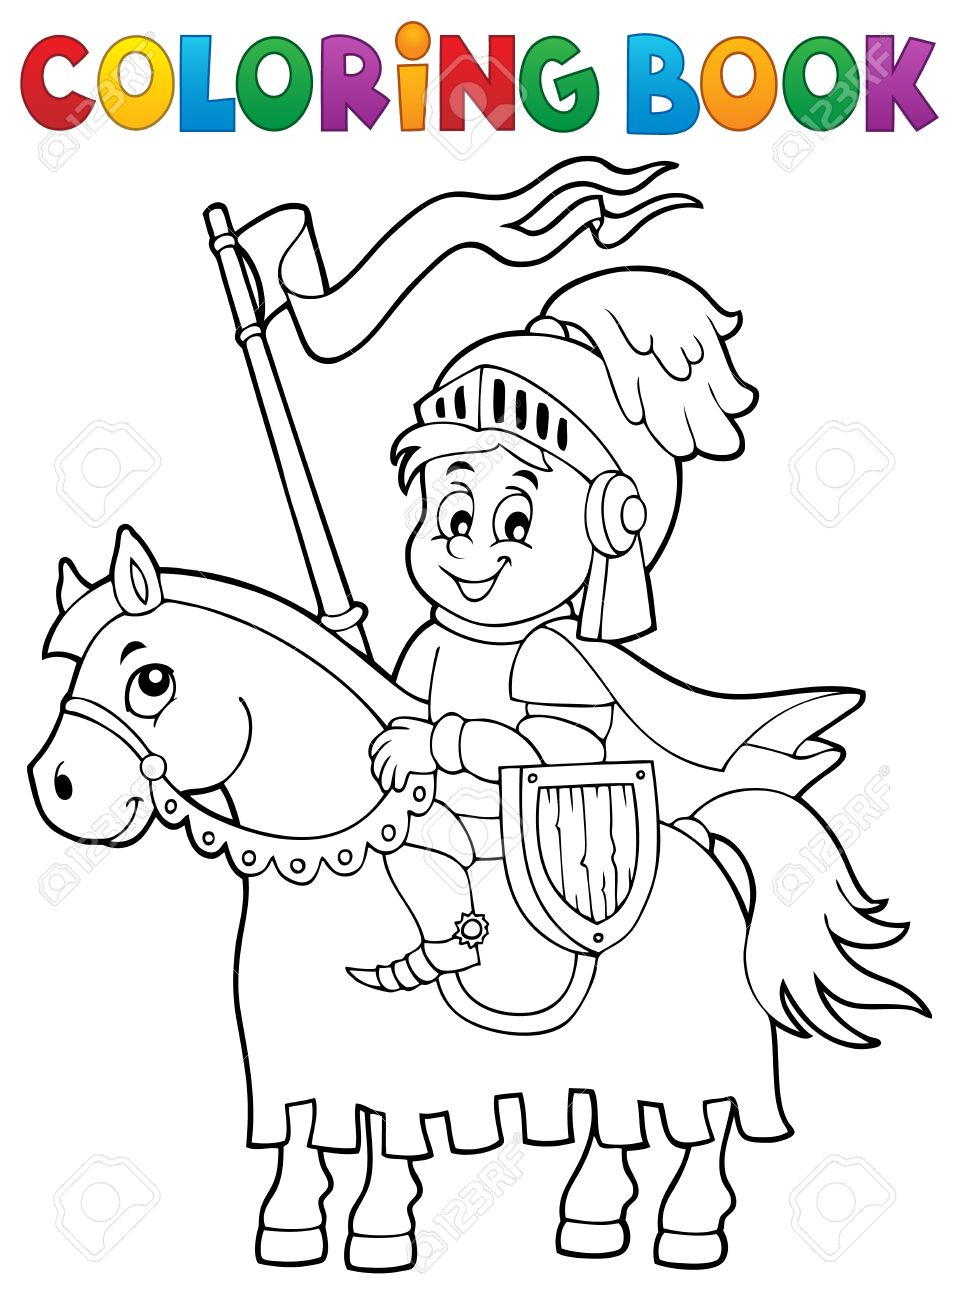 coloring book knight on horse theme 1 eps10 vector illustration